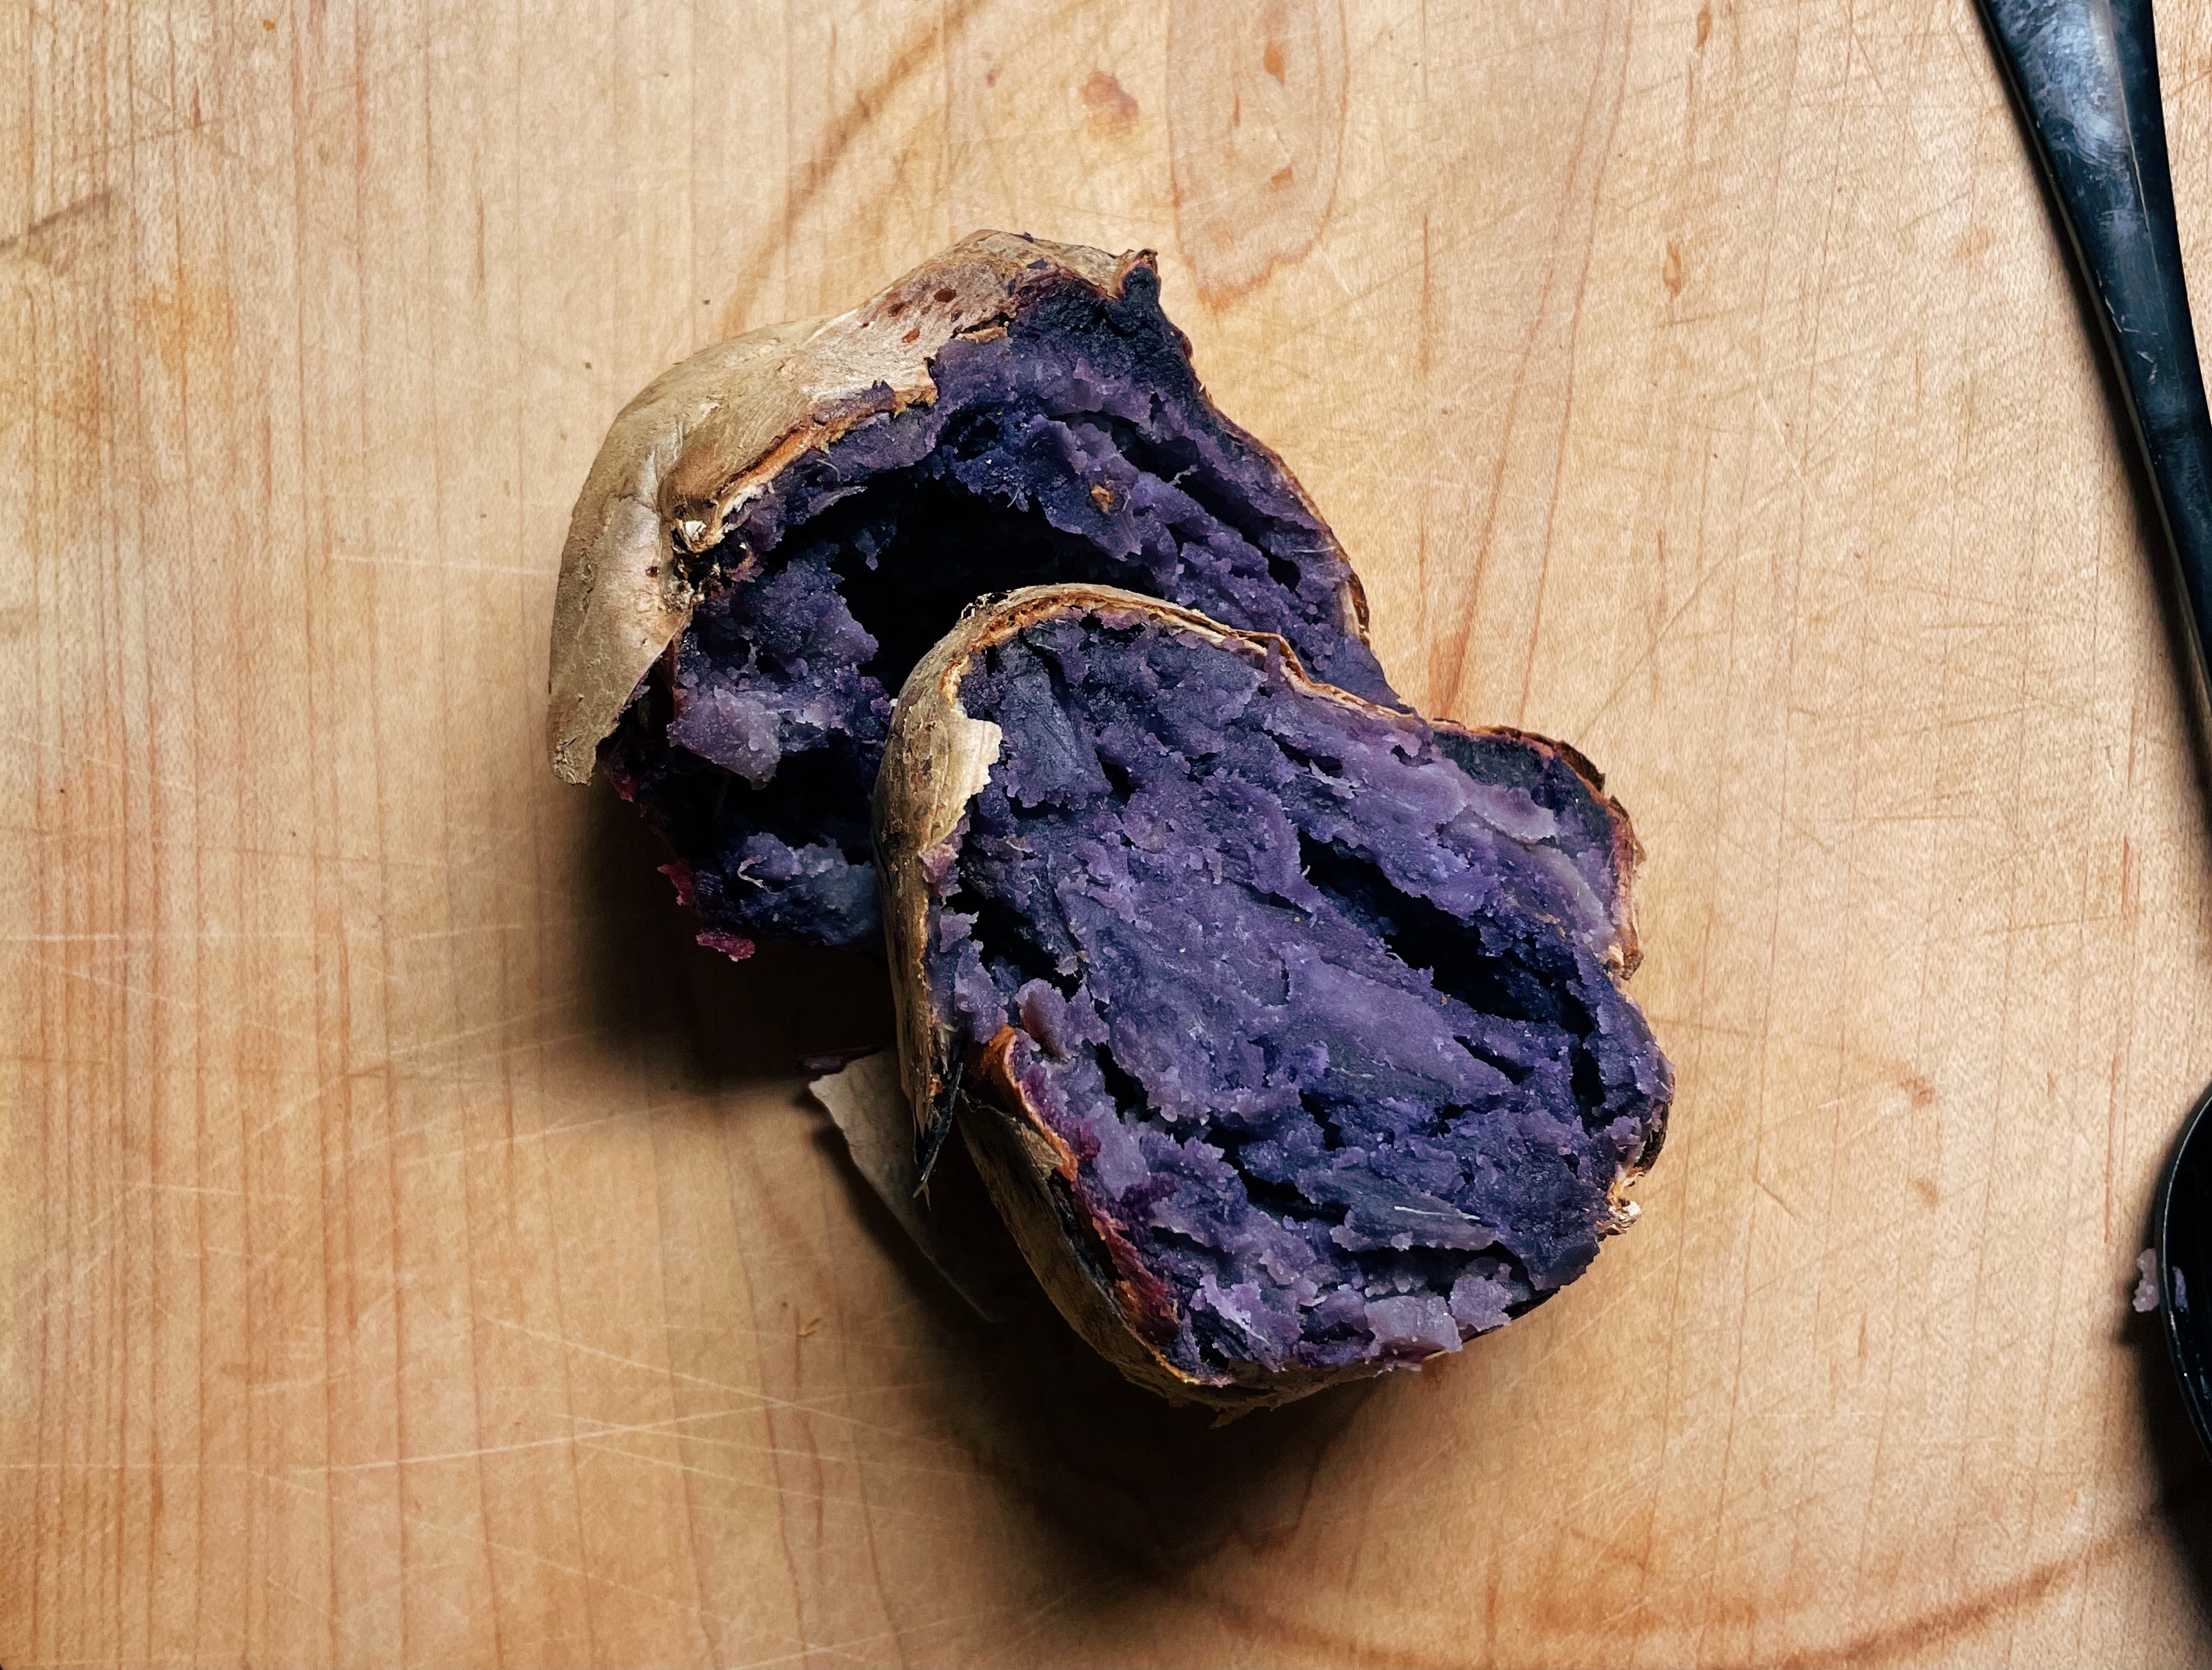 An overhead photo shows a purple baked sweet potato sliced lengthwise, sitting on a brown cutting board.